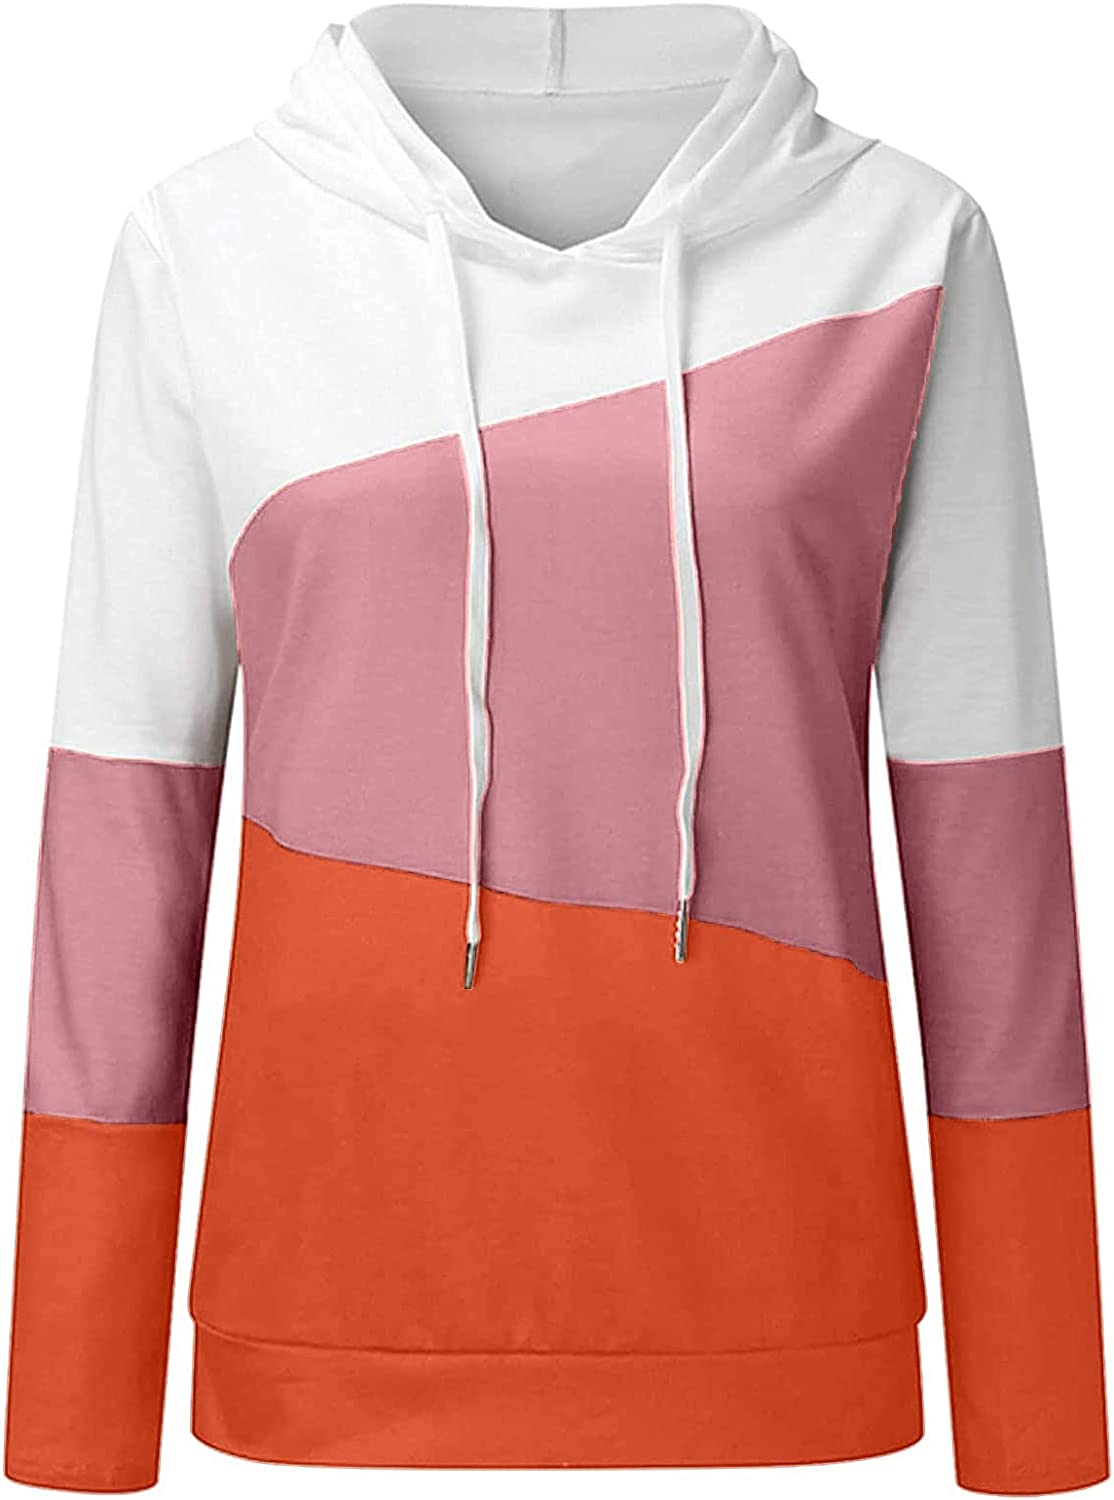 Womens Color Contrast Drawstring Hoodie Sweatshirt Pullover Lightweight O Neck Long Sleeve Blouse Tops Jumper